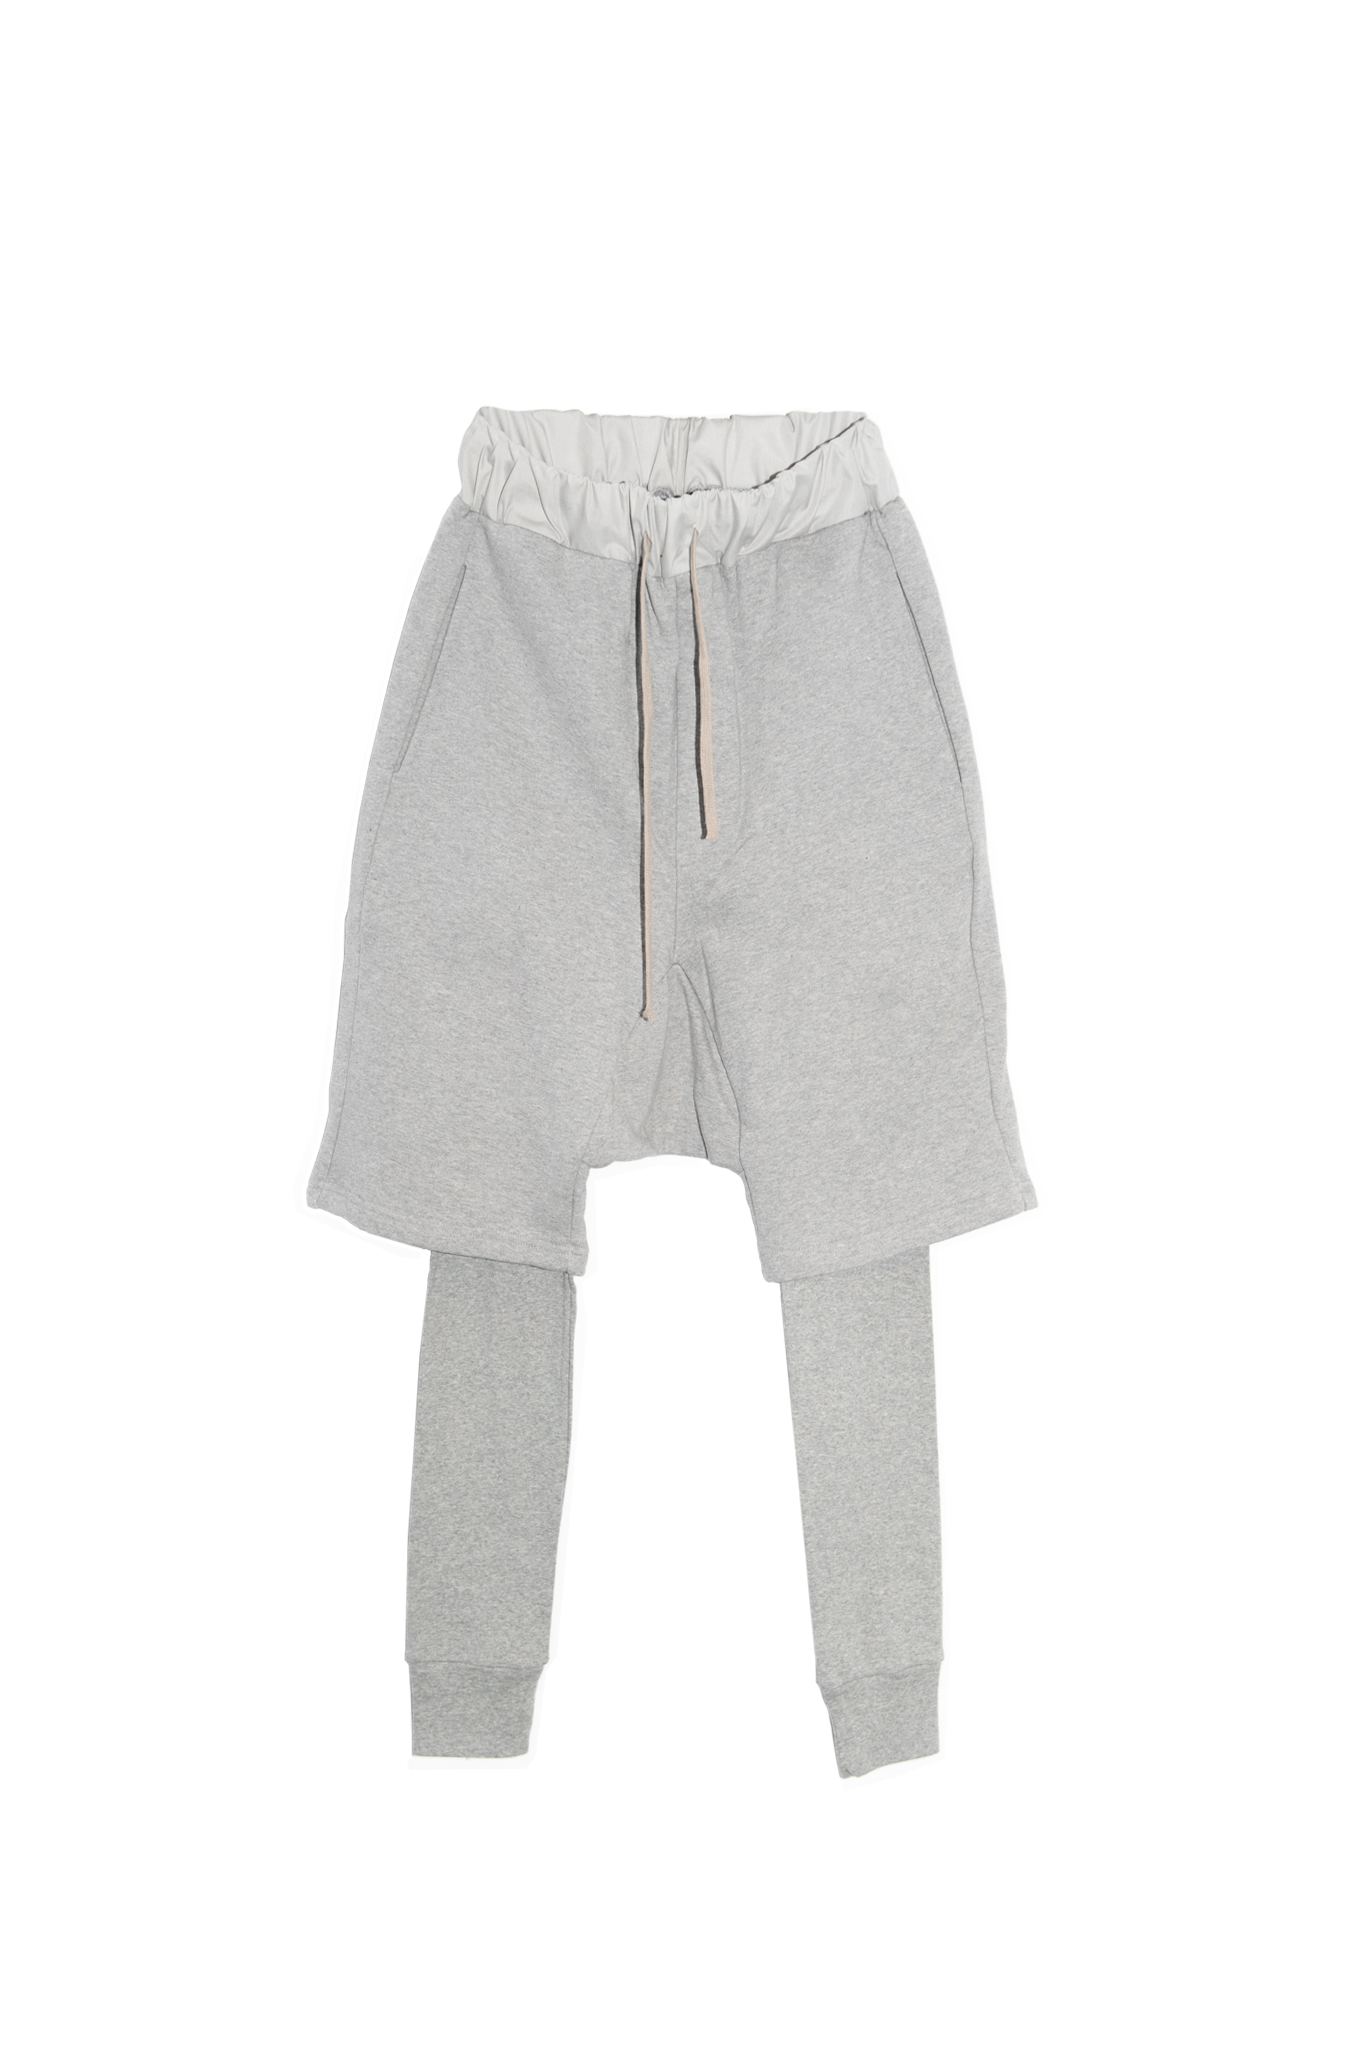 Pants drop layered gray